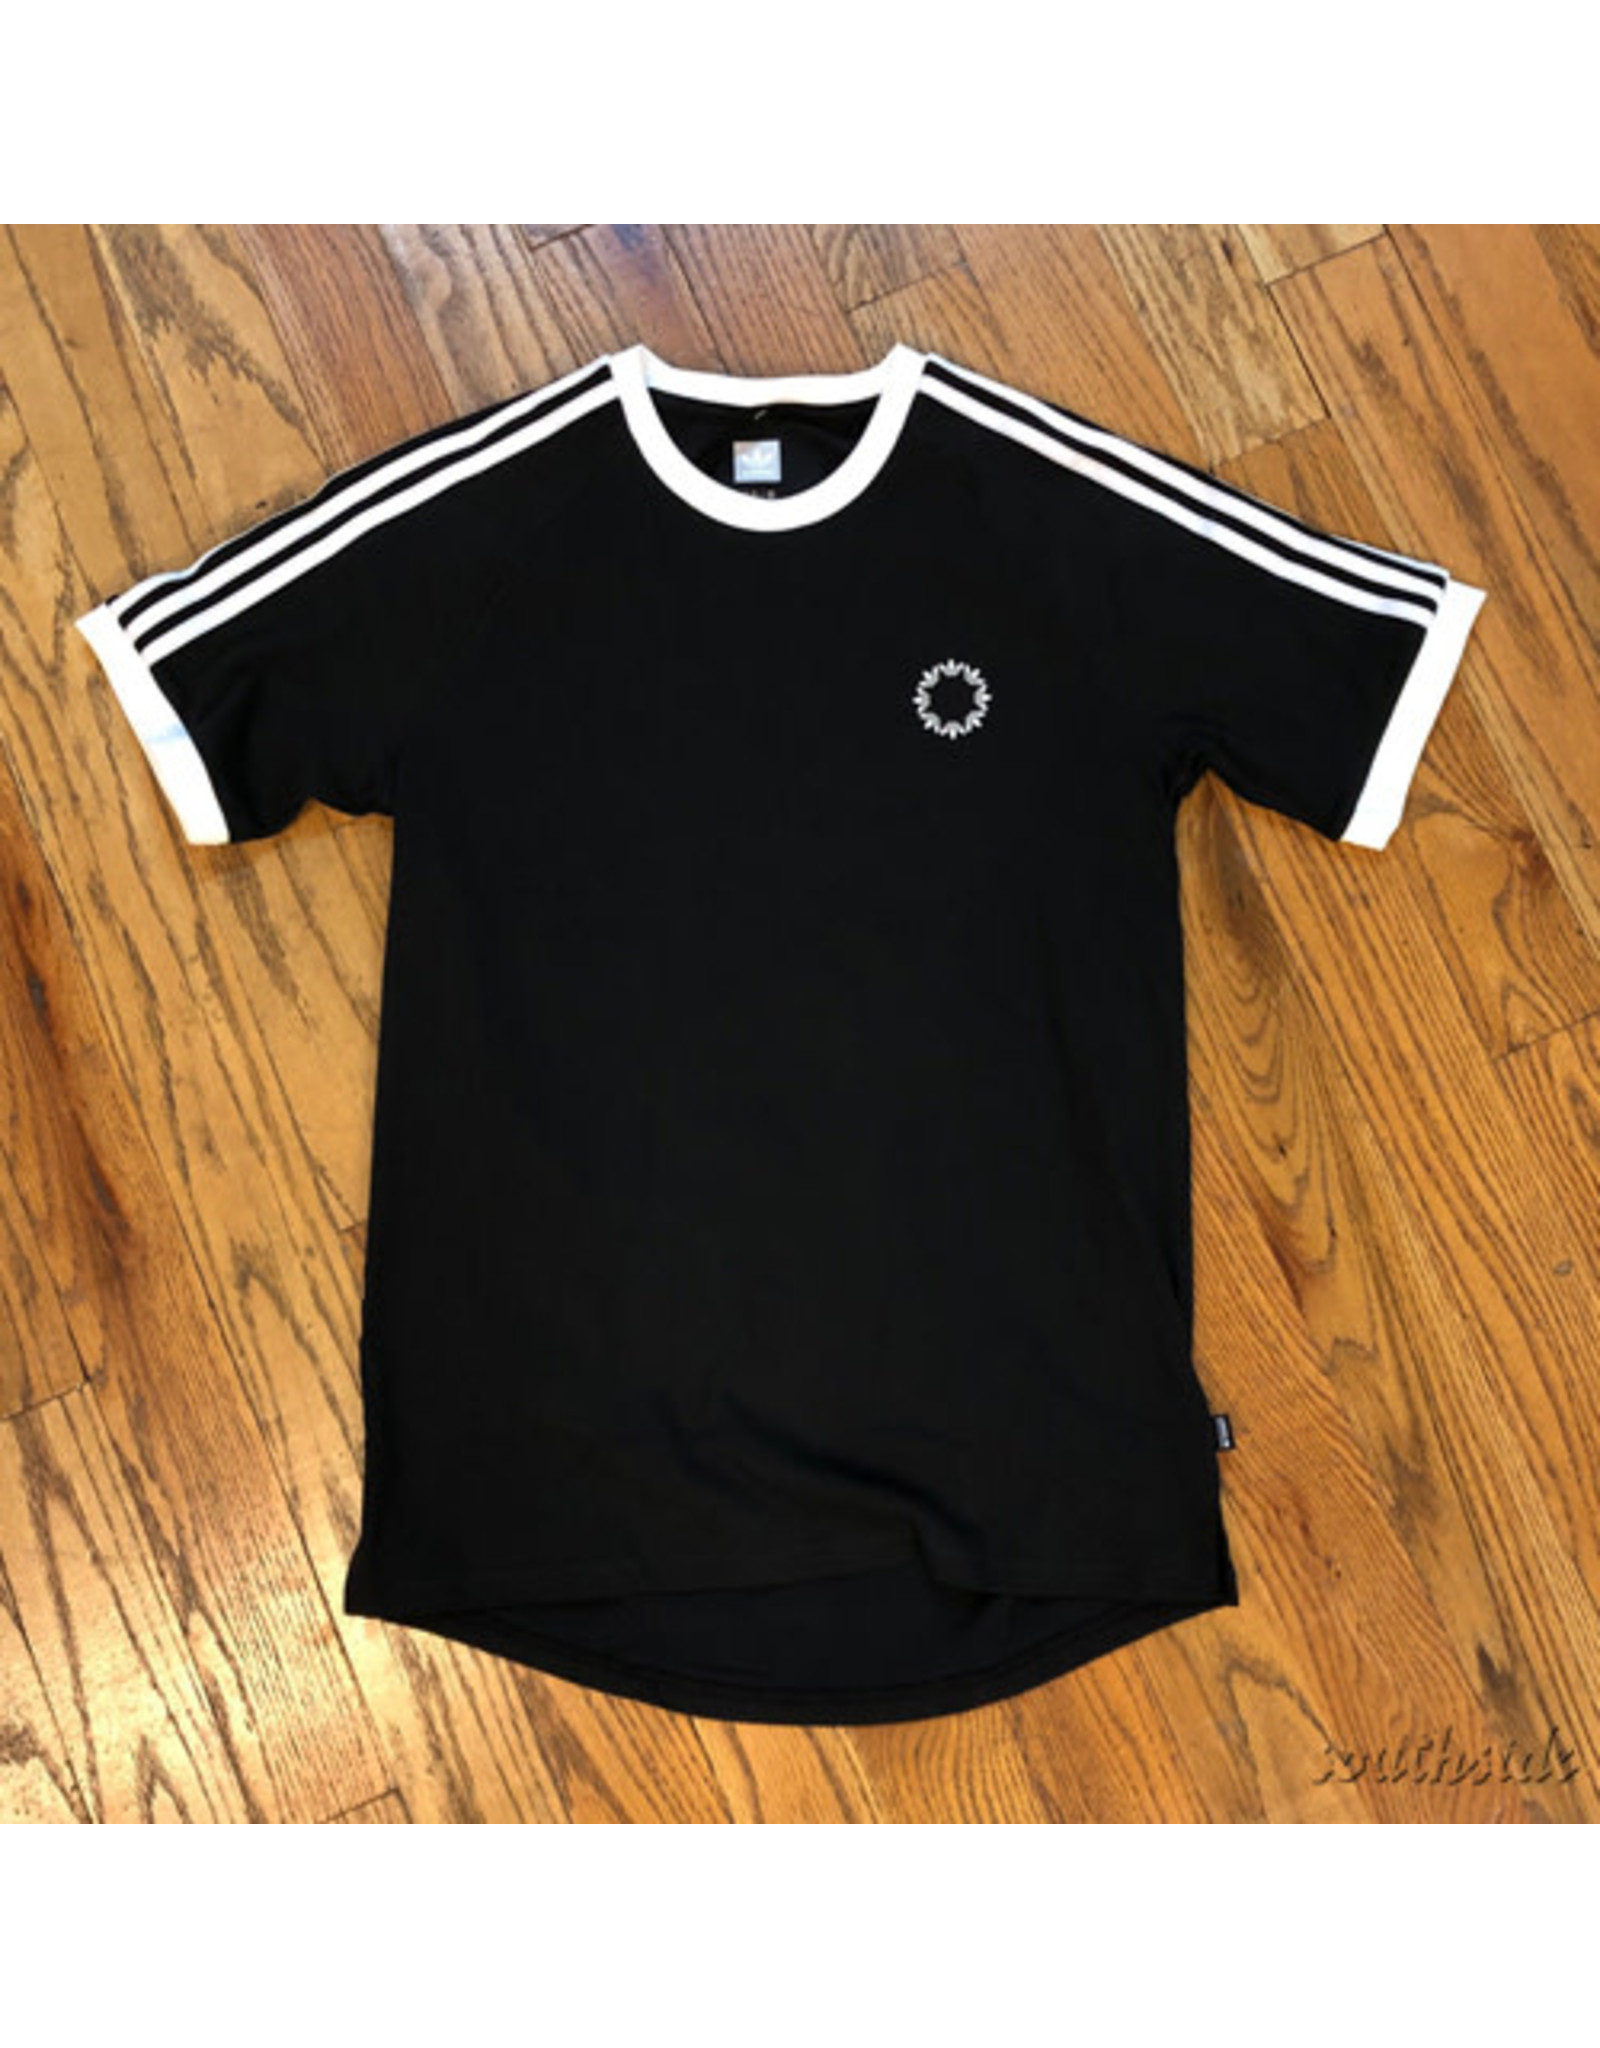 ADIDAS Adidas Club Jersey Black White